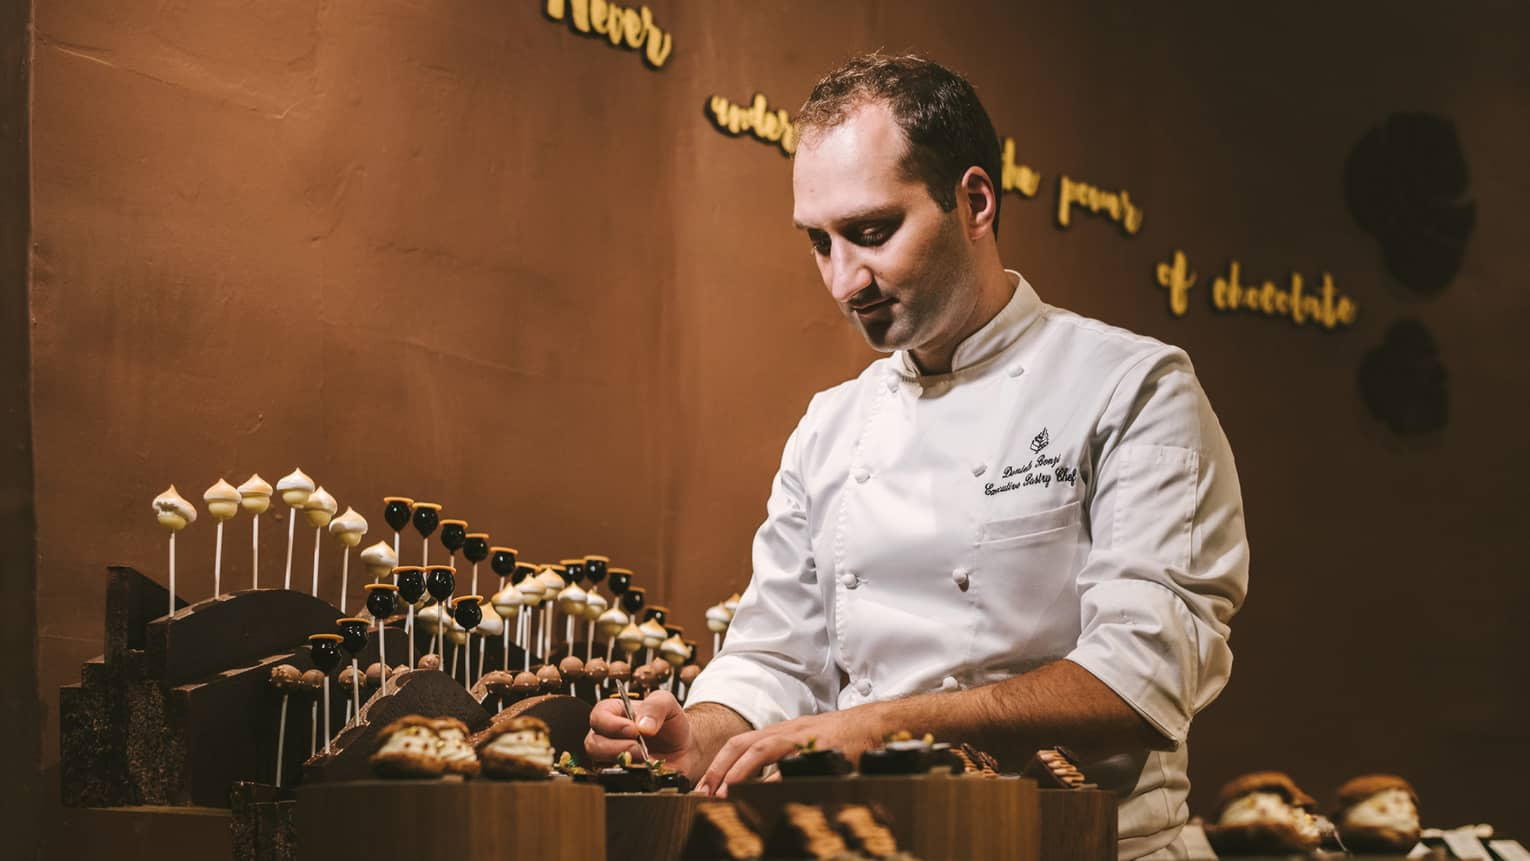 Pastry chef Daniele Bonzi in the chocolate room, entirely decorated in chocolate